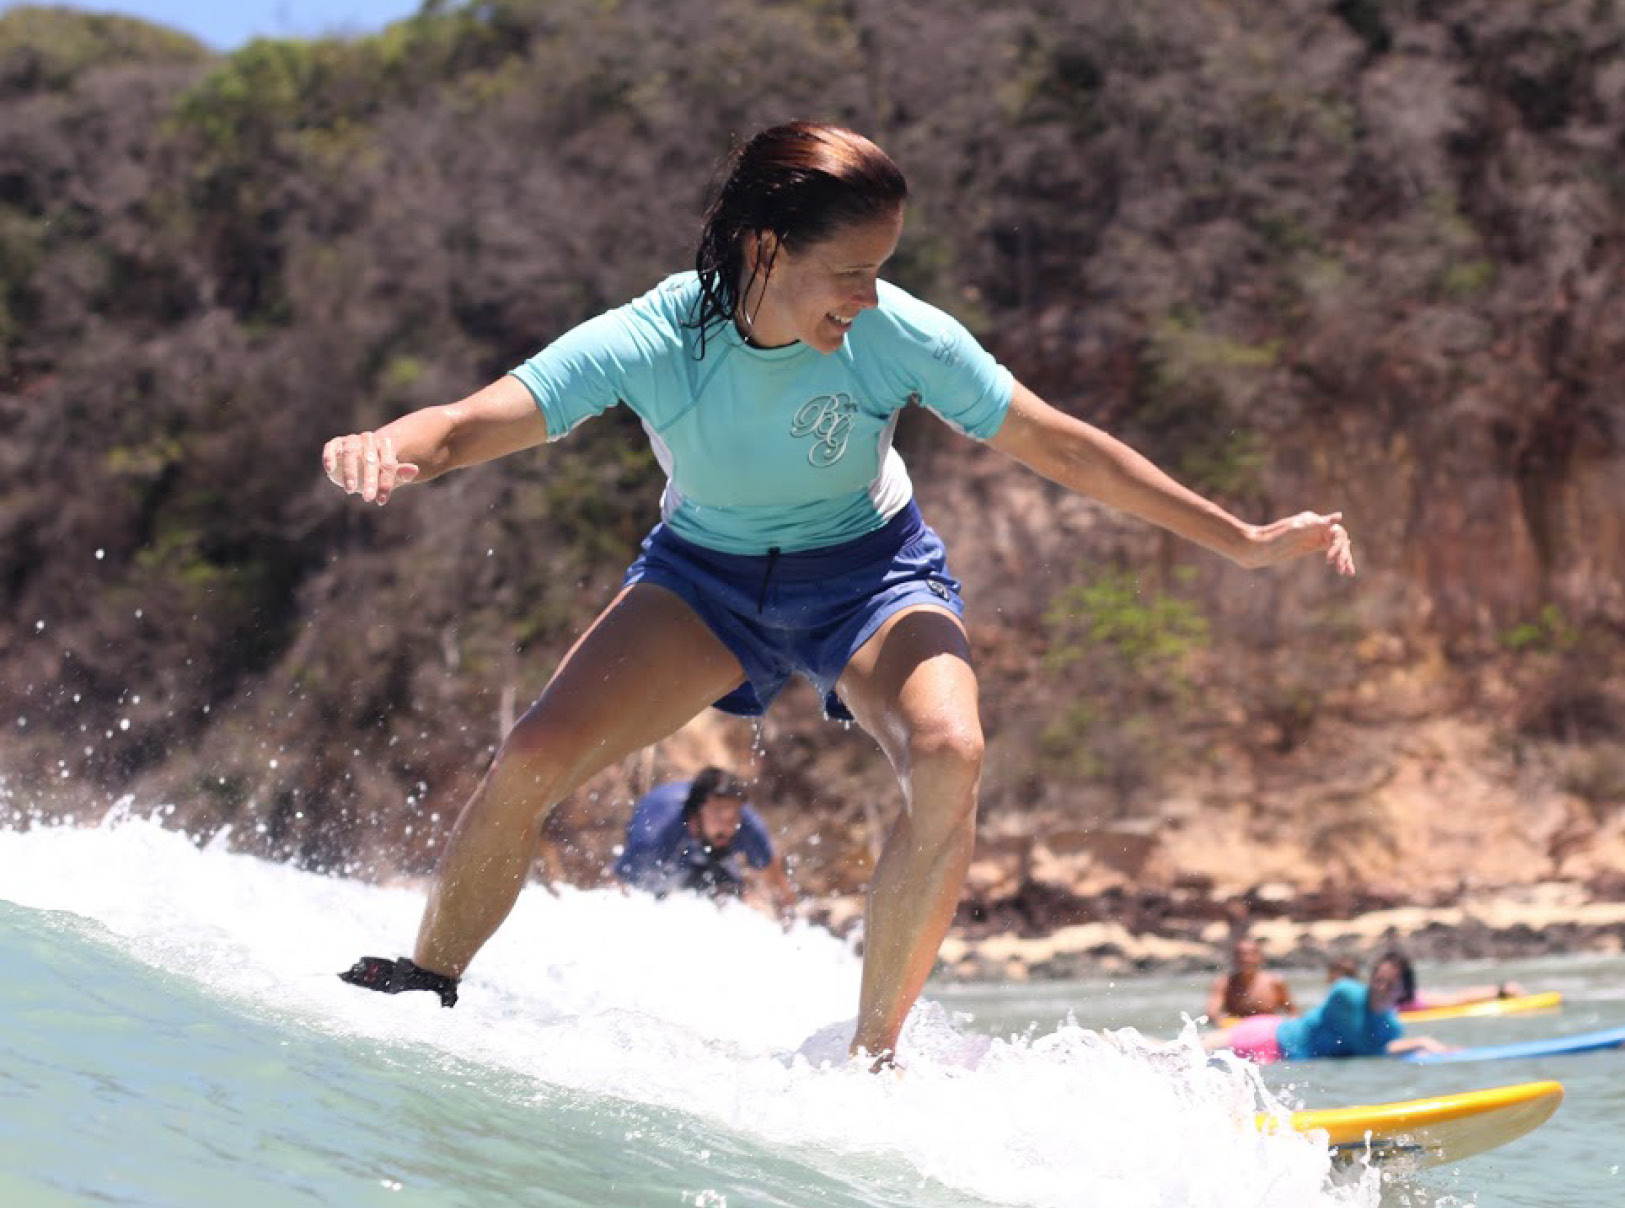 About Laura - Job DescriptionDirector of an after-school program for high school studentsHobbiesTraveling, hiking, surfing, Capoeira (Brazilian martial arts), dancing, and foster rescue dogsFun FactLaura learned how to swim when she was two years old